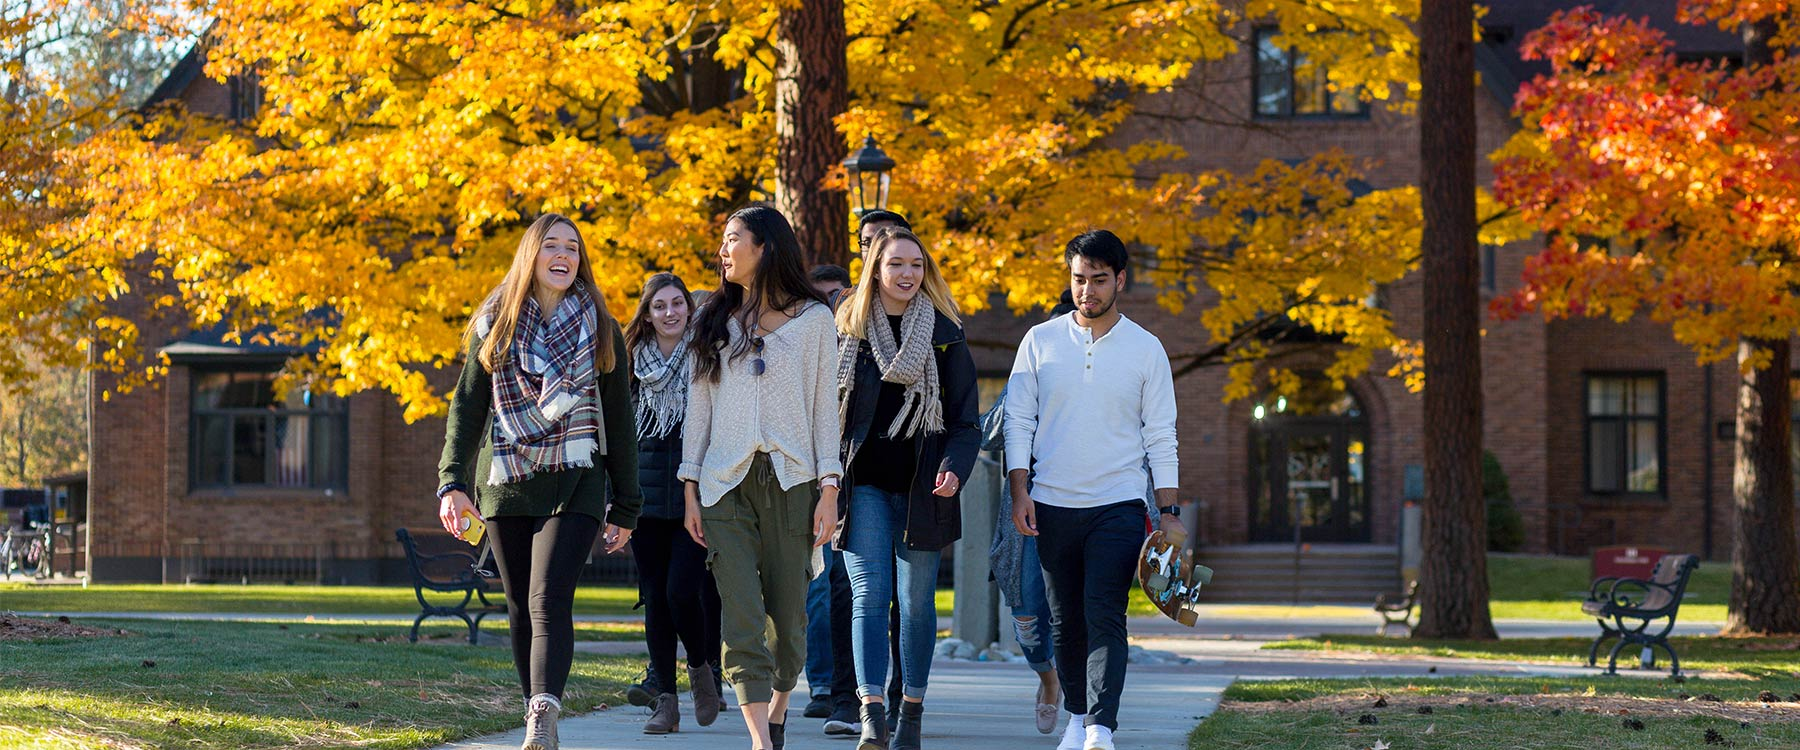 A group of students walk on a path through campus. Fall trees surround them.